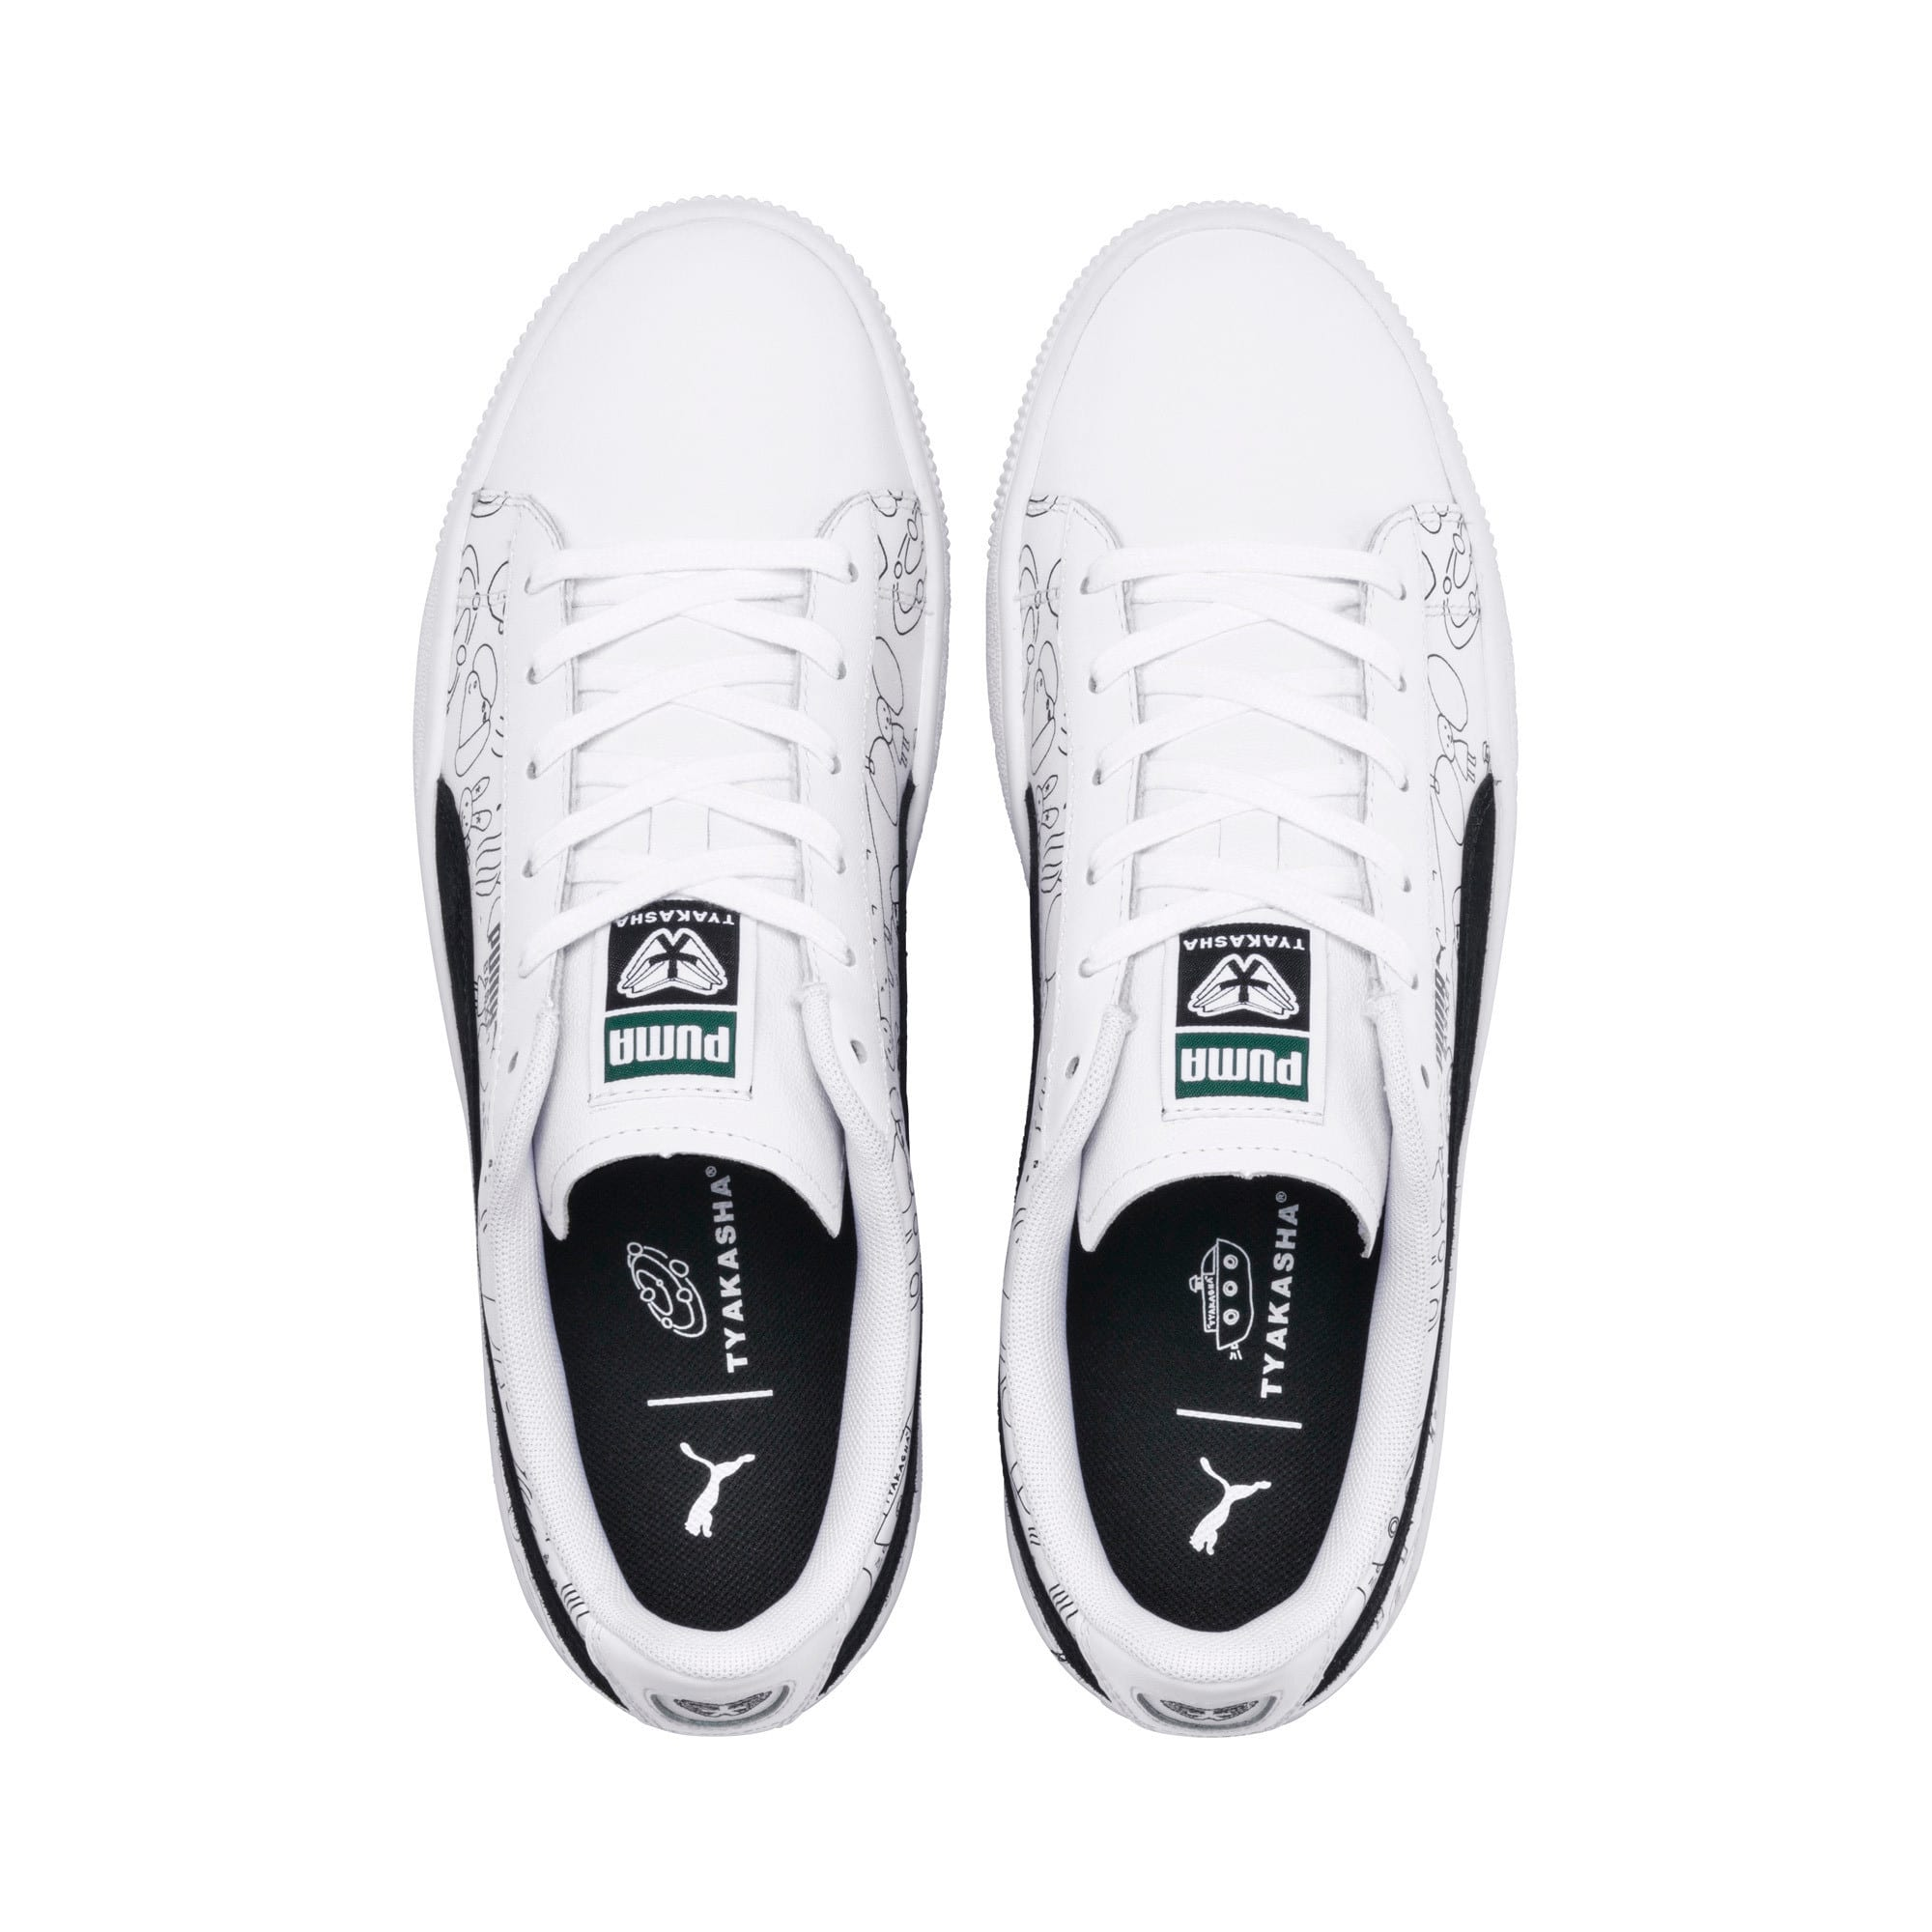 Thumbnail 6 of PUMA x TYAKASHA バスケット スニーカー, Puma White-Puma Black, medium-JPN